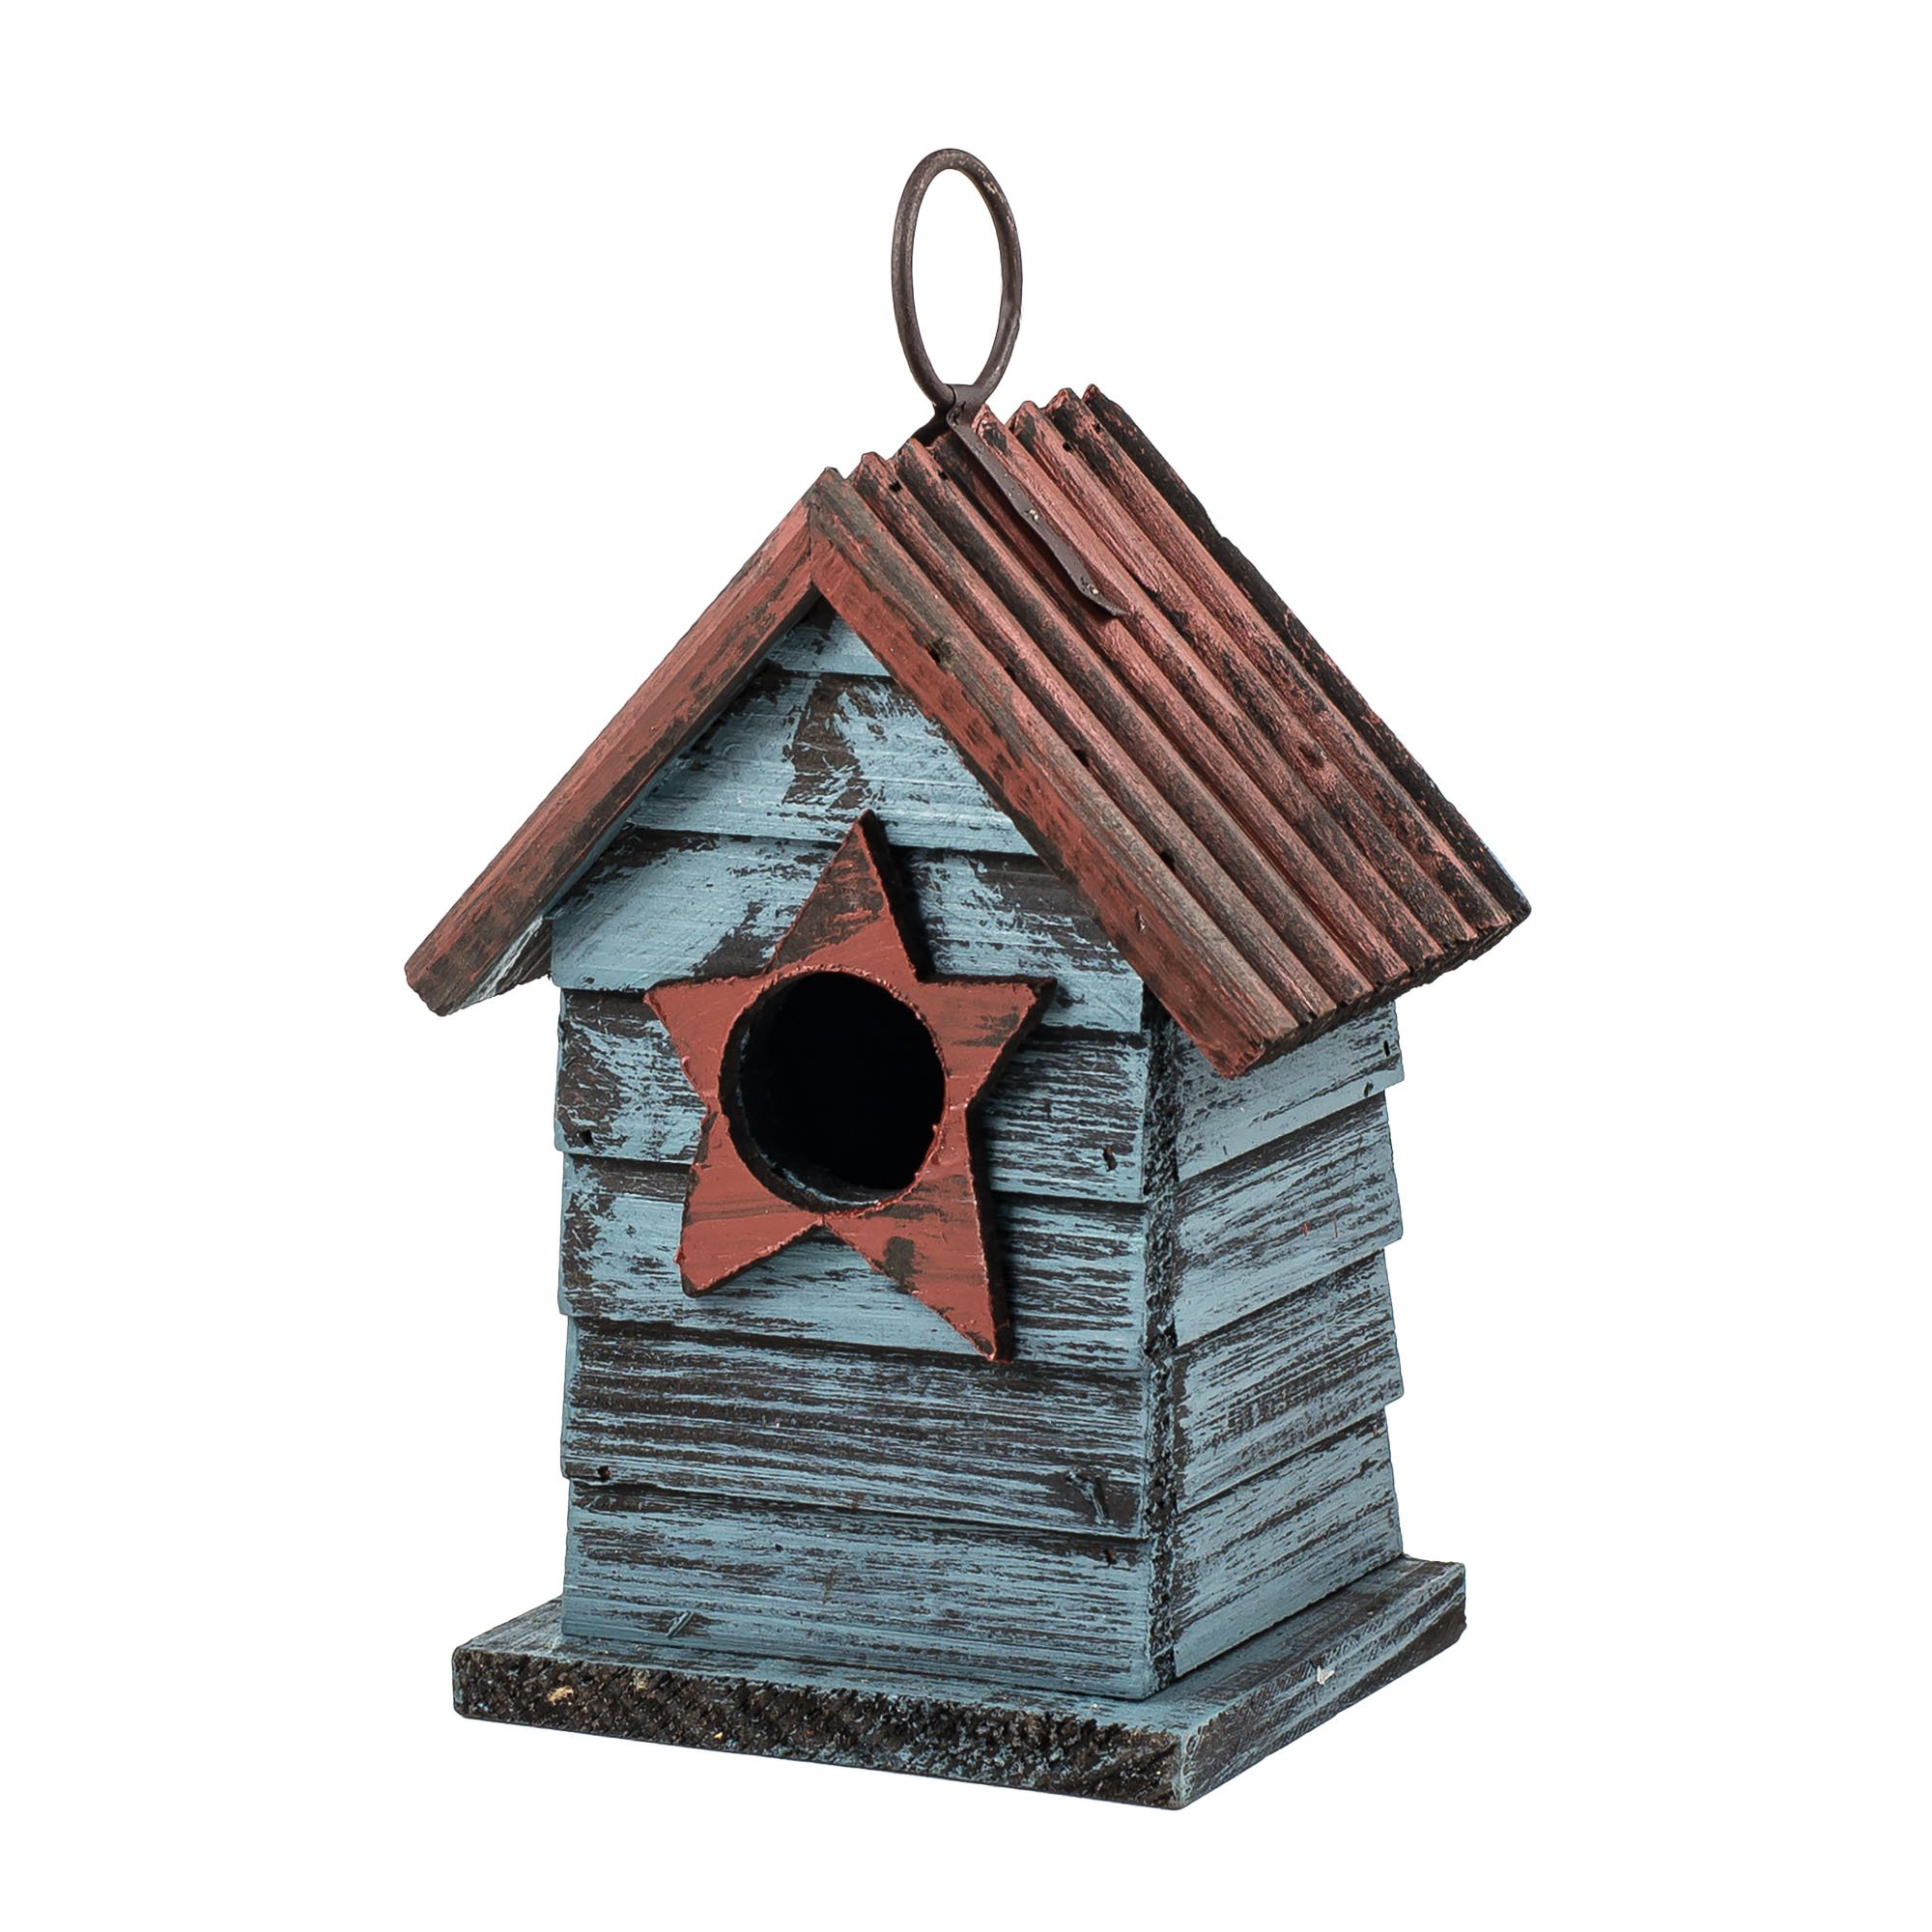 6.5'' Blue Hanging Rustic Style Birdhouse